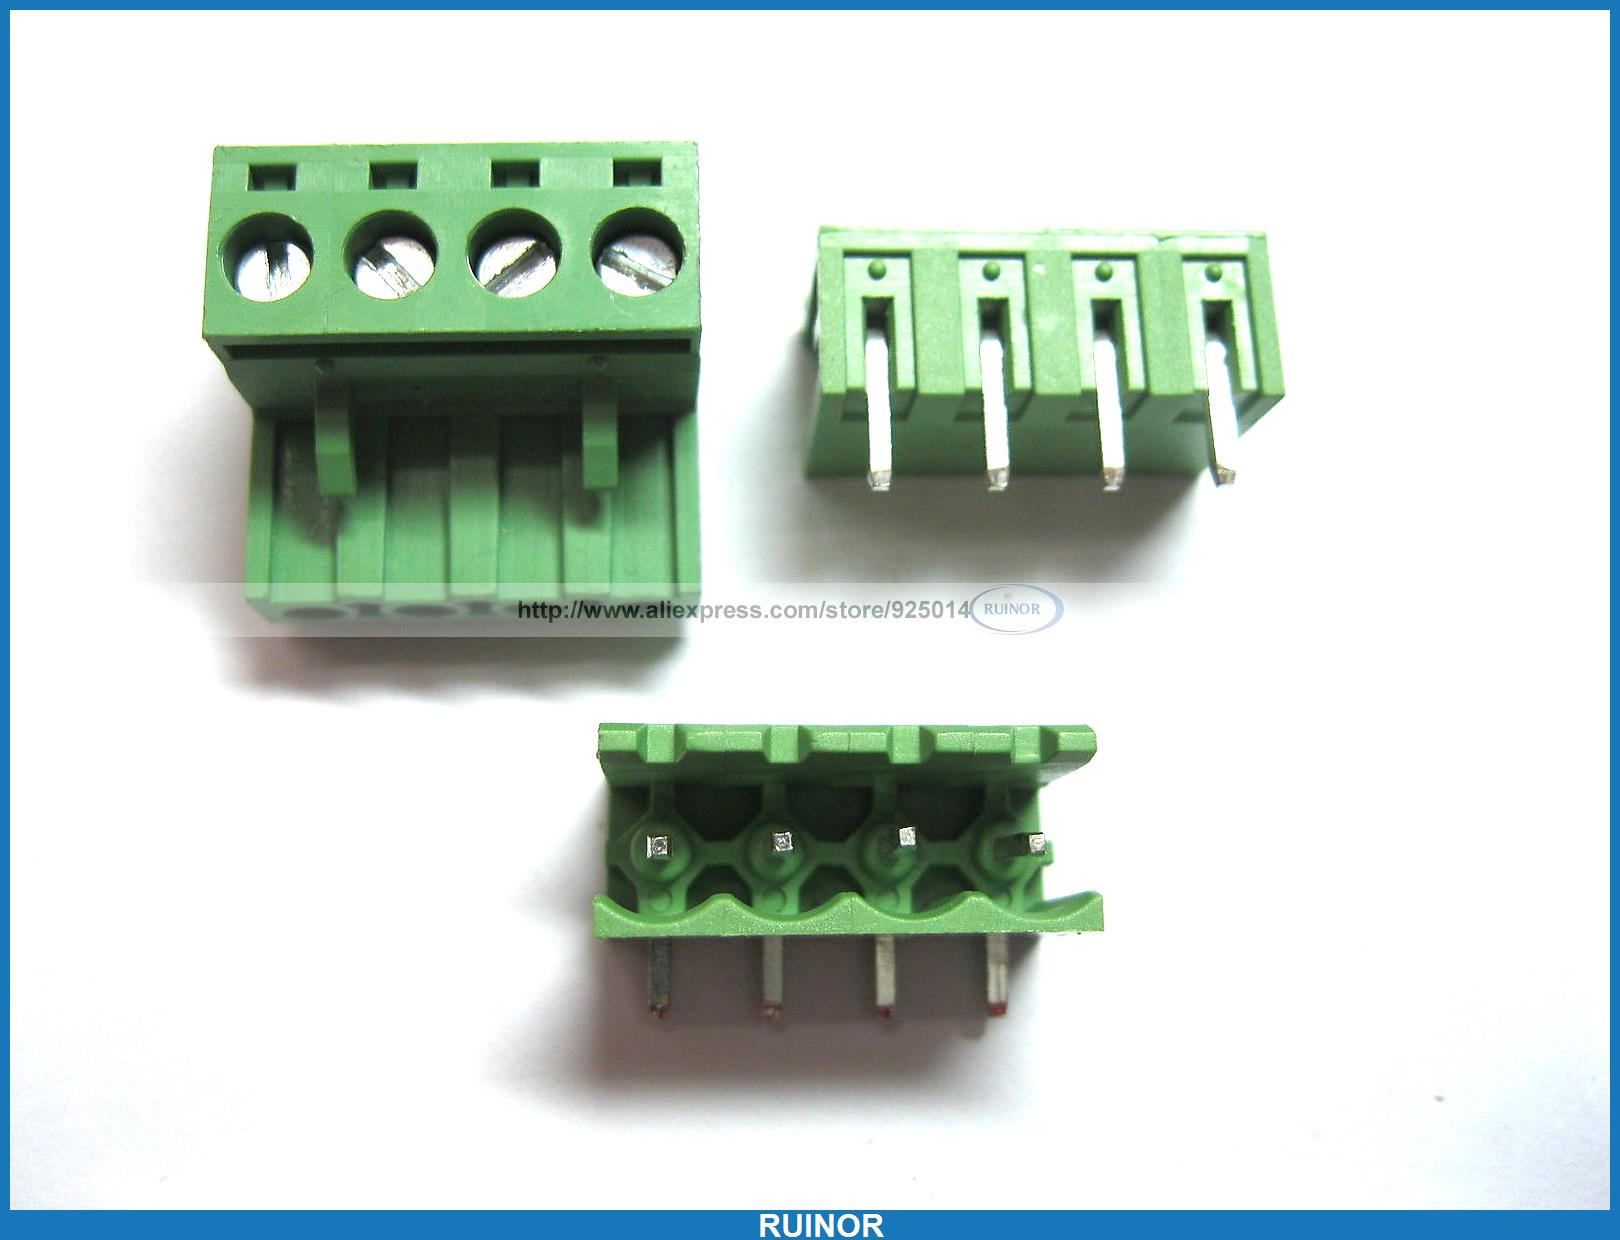 50 Pcs 5 08mm Angle 4 Pin Screw Terminal Block Connector Pluggable Type Green fitness breathable sportswear women t shirt sport suit yoga top quick dry running shirt gym clothes sport shirt jacket p189